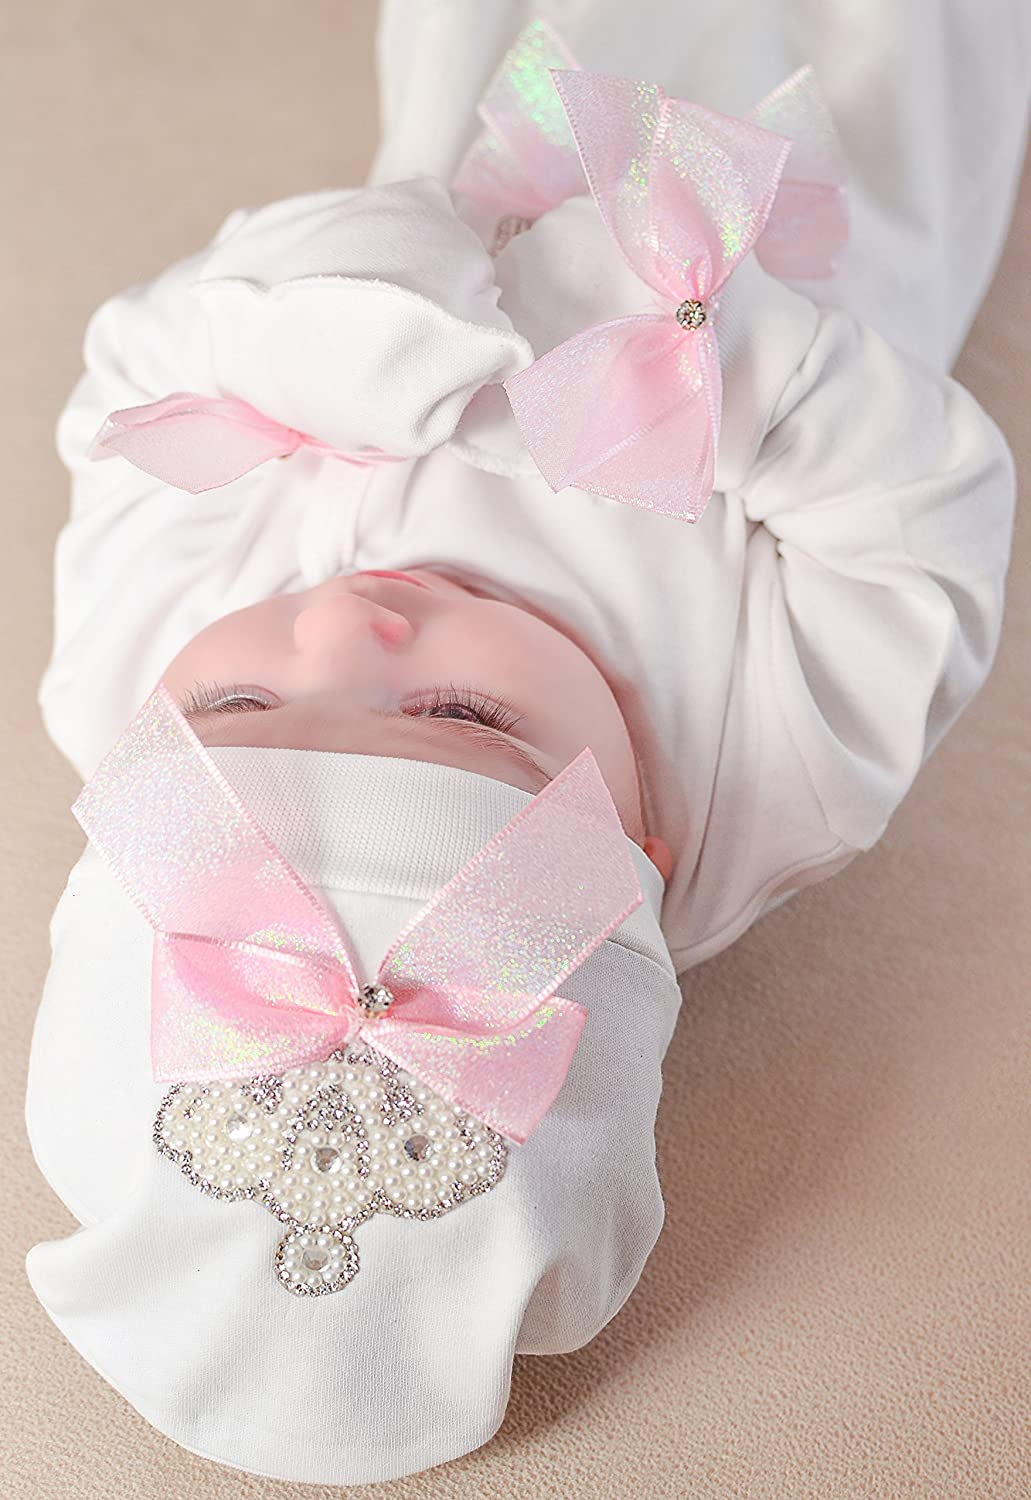 Lilax Baby Girl Jewels Crown Layette 3 Piece Gift Set